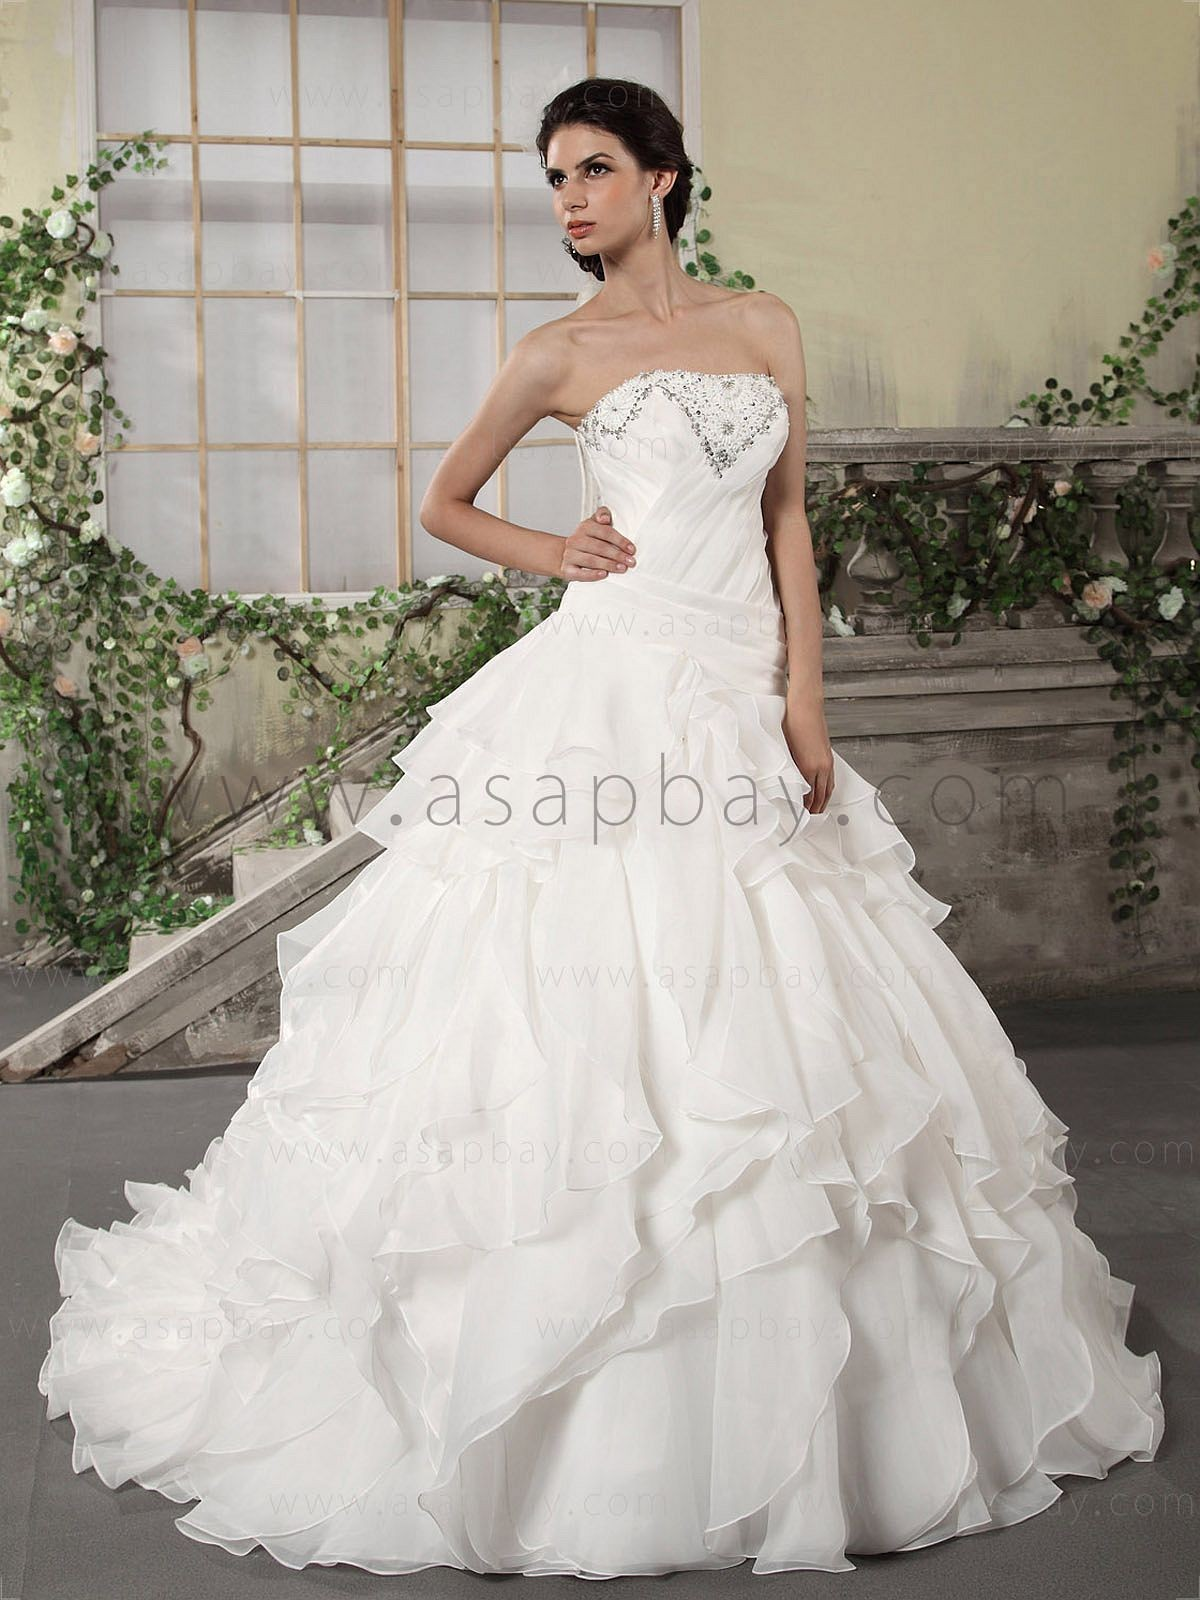 ivory strapless ball gown wedding dresses